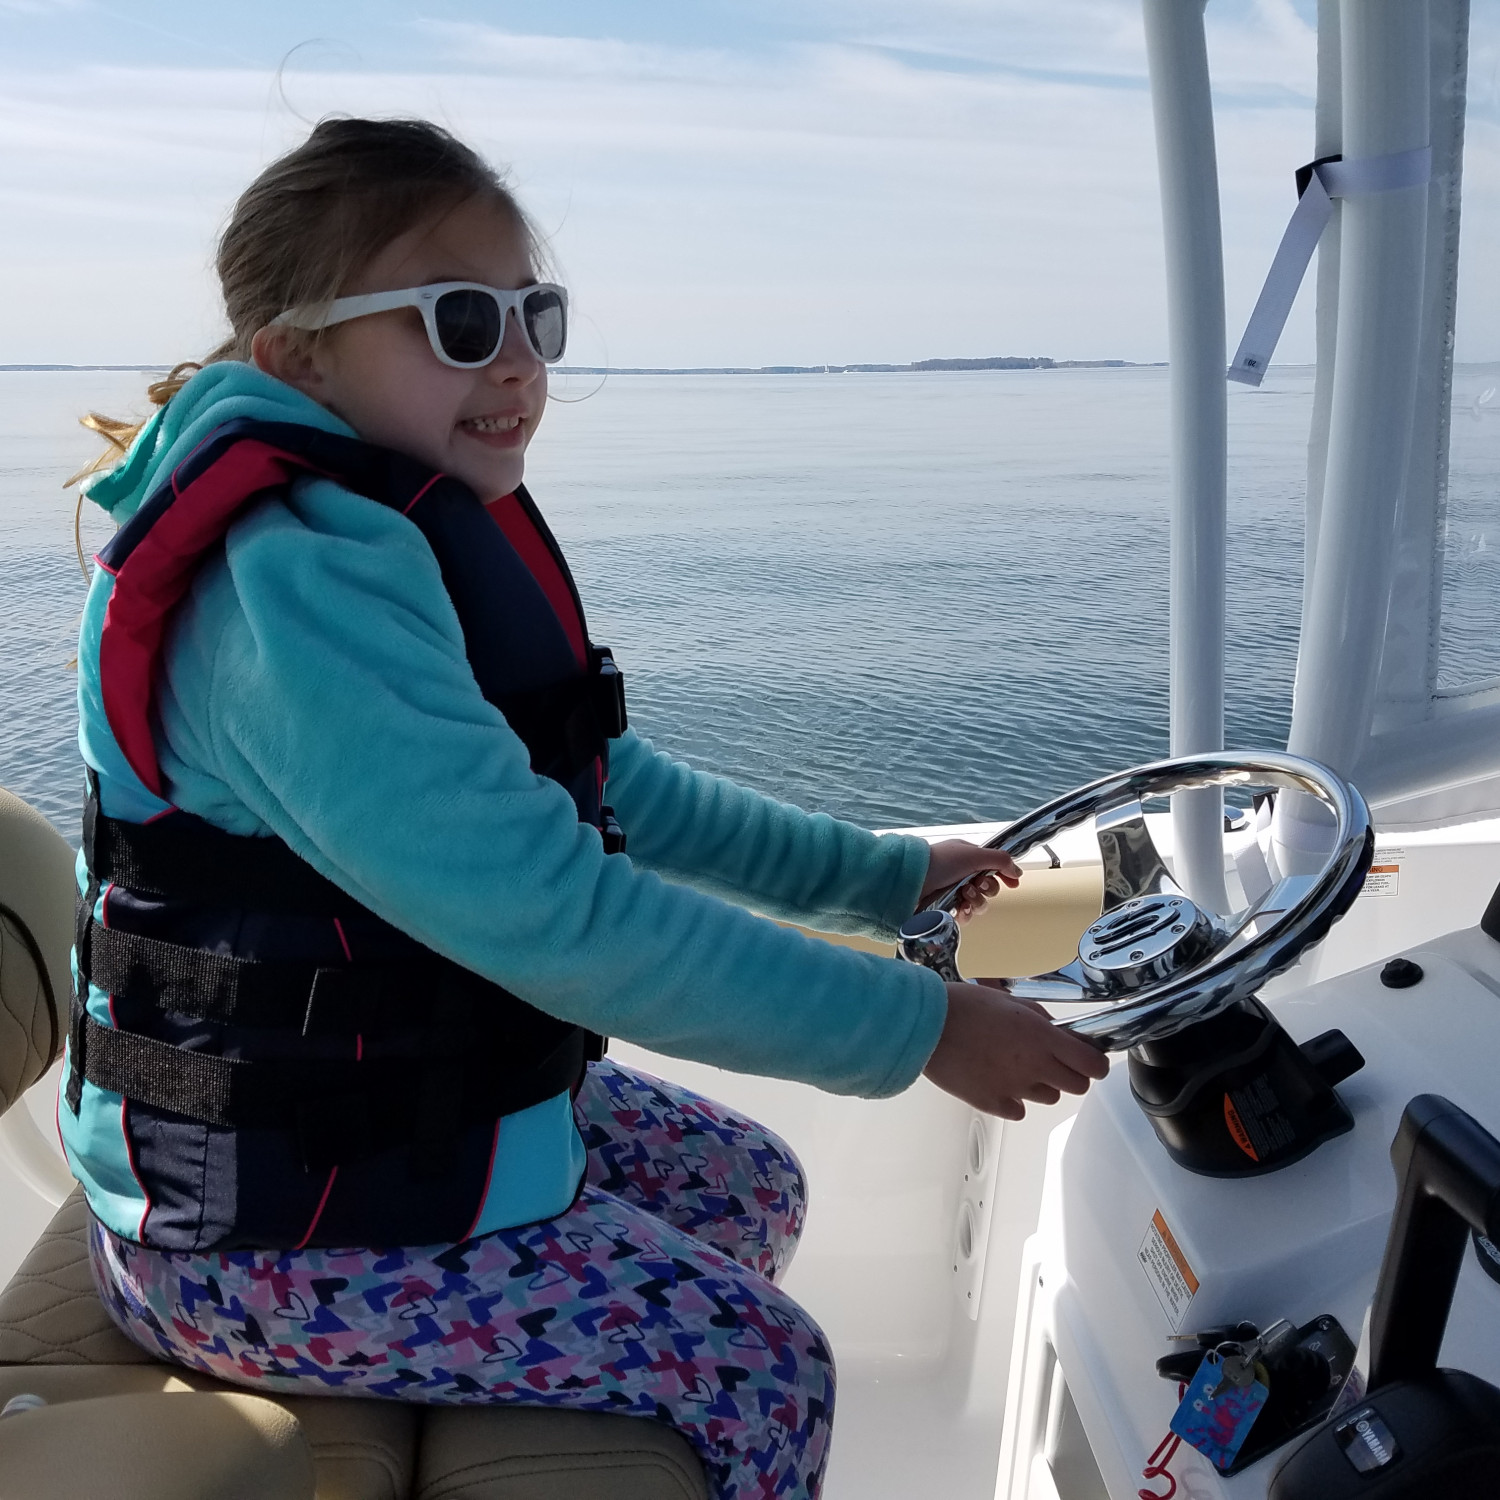 Title: My captain! - On board their Sportsman Heritage 231 Center Console - Location: Kent Narrows, MD. Participating in the Photo Contest #SportsmanMay2018